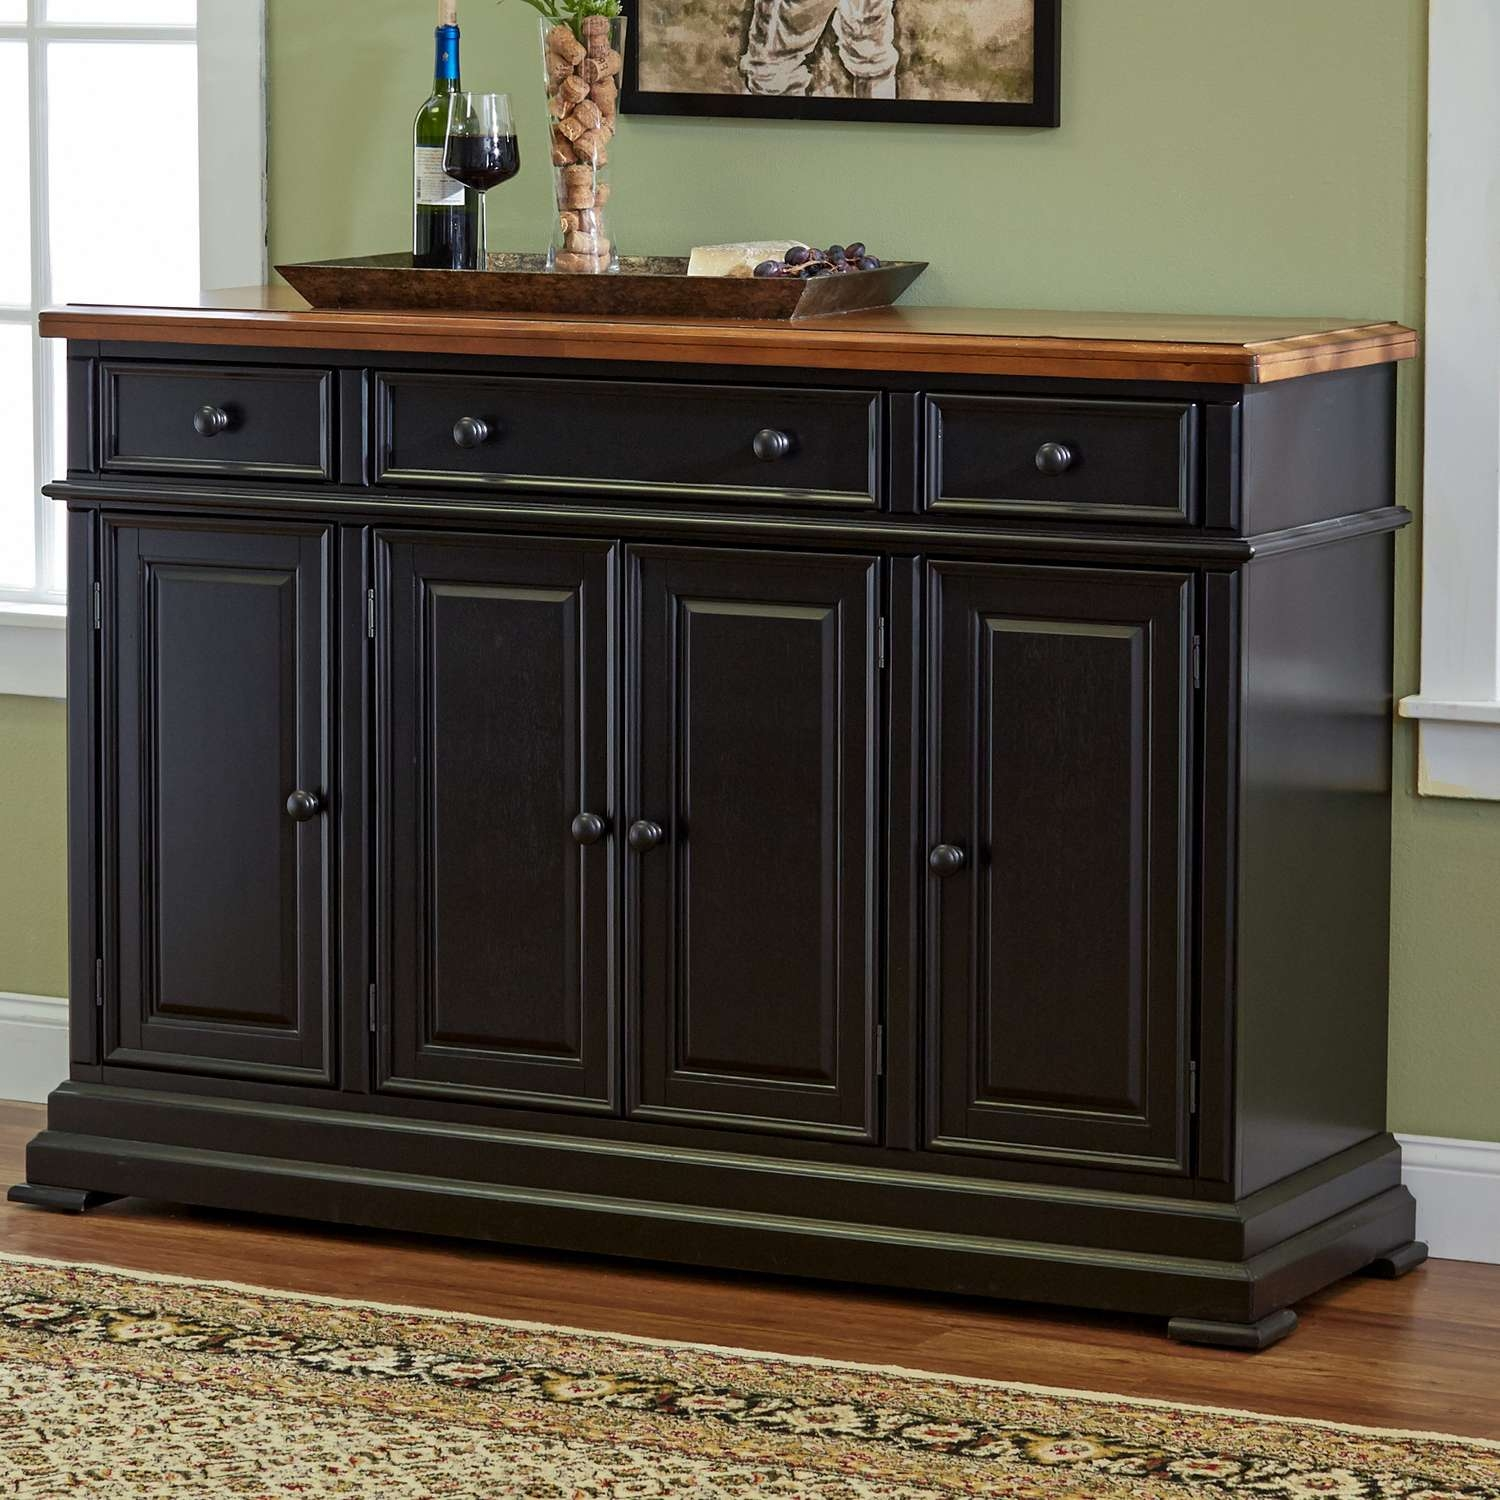 Furniture: Dark Wood Flooring And White Sideboard Buffet And Regarding Black Sideboards And Buffets (View 13 of 20)